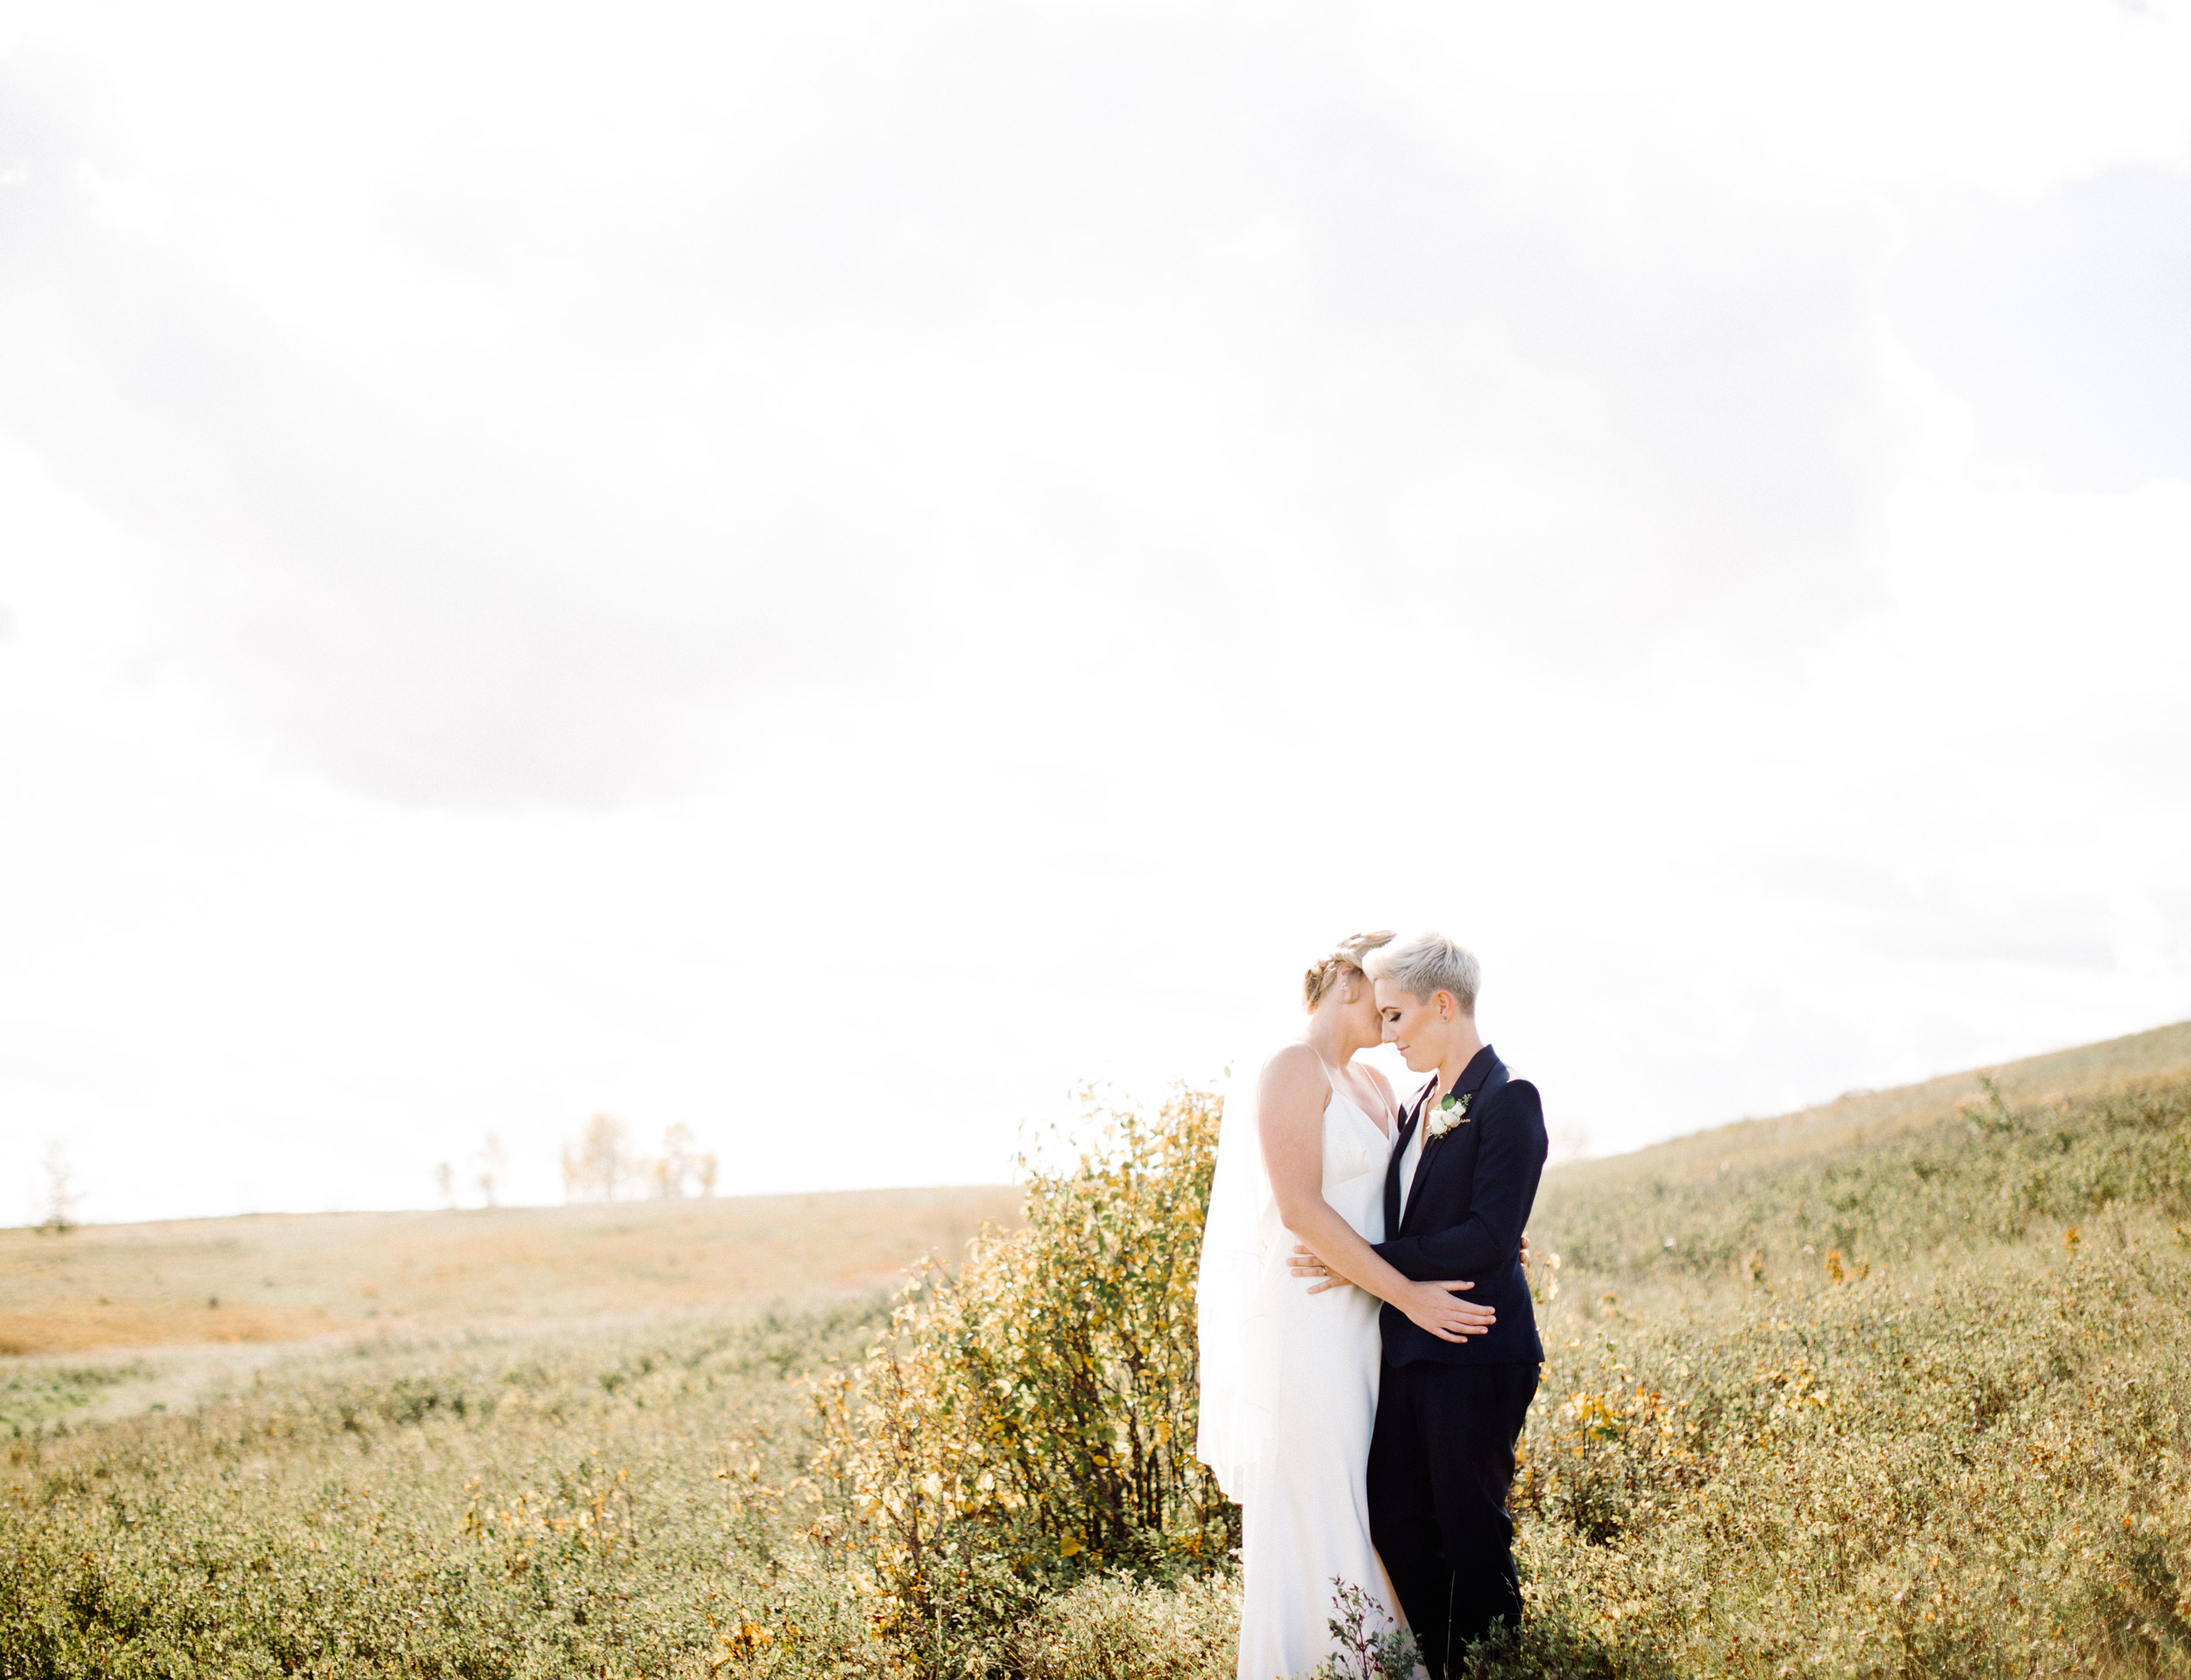 015-calgary_wedding_photographers.jpg